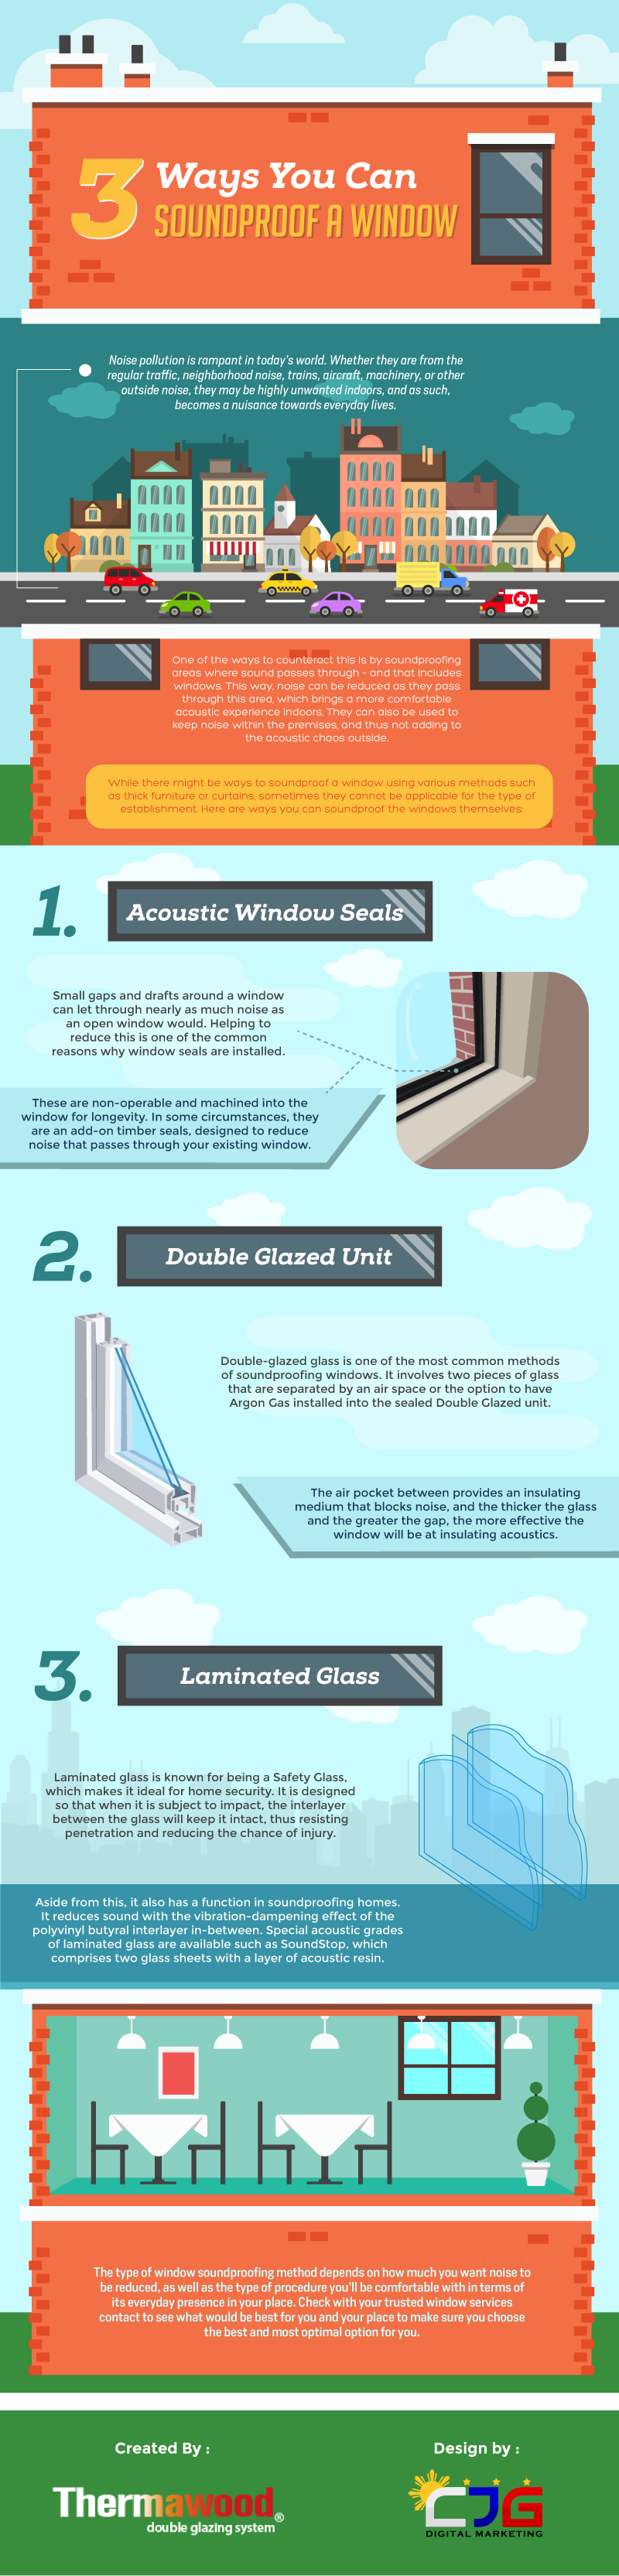 how to soundproof windows